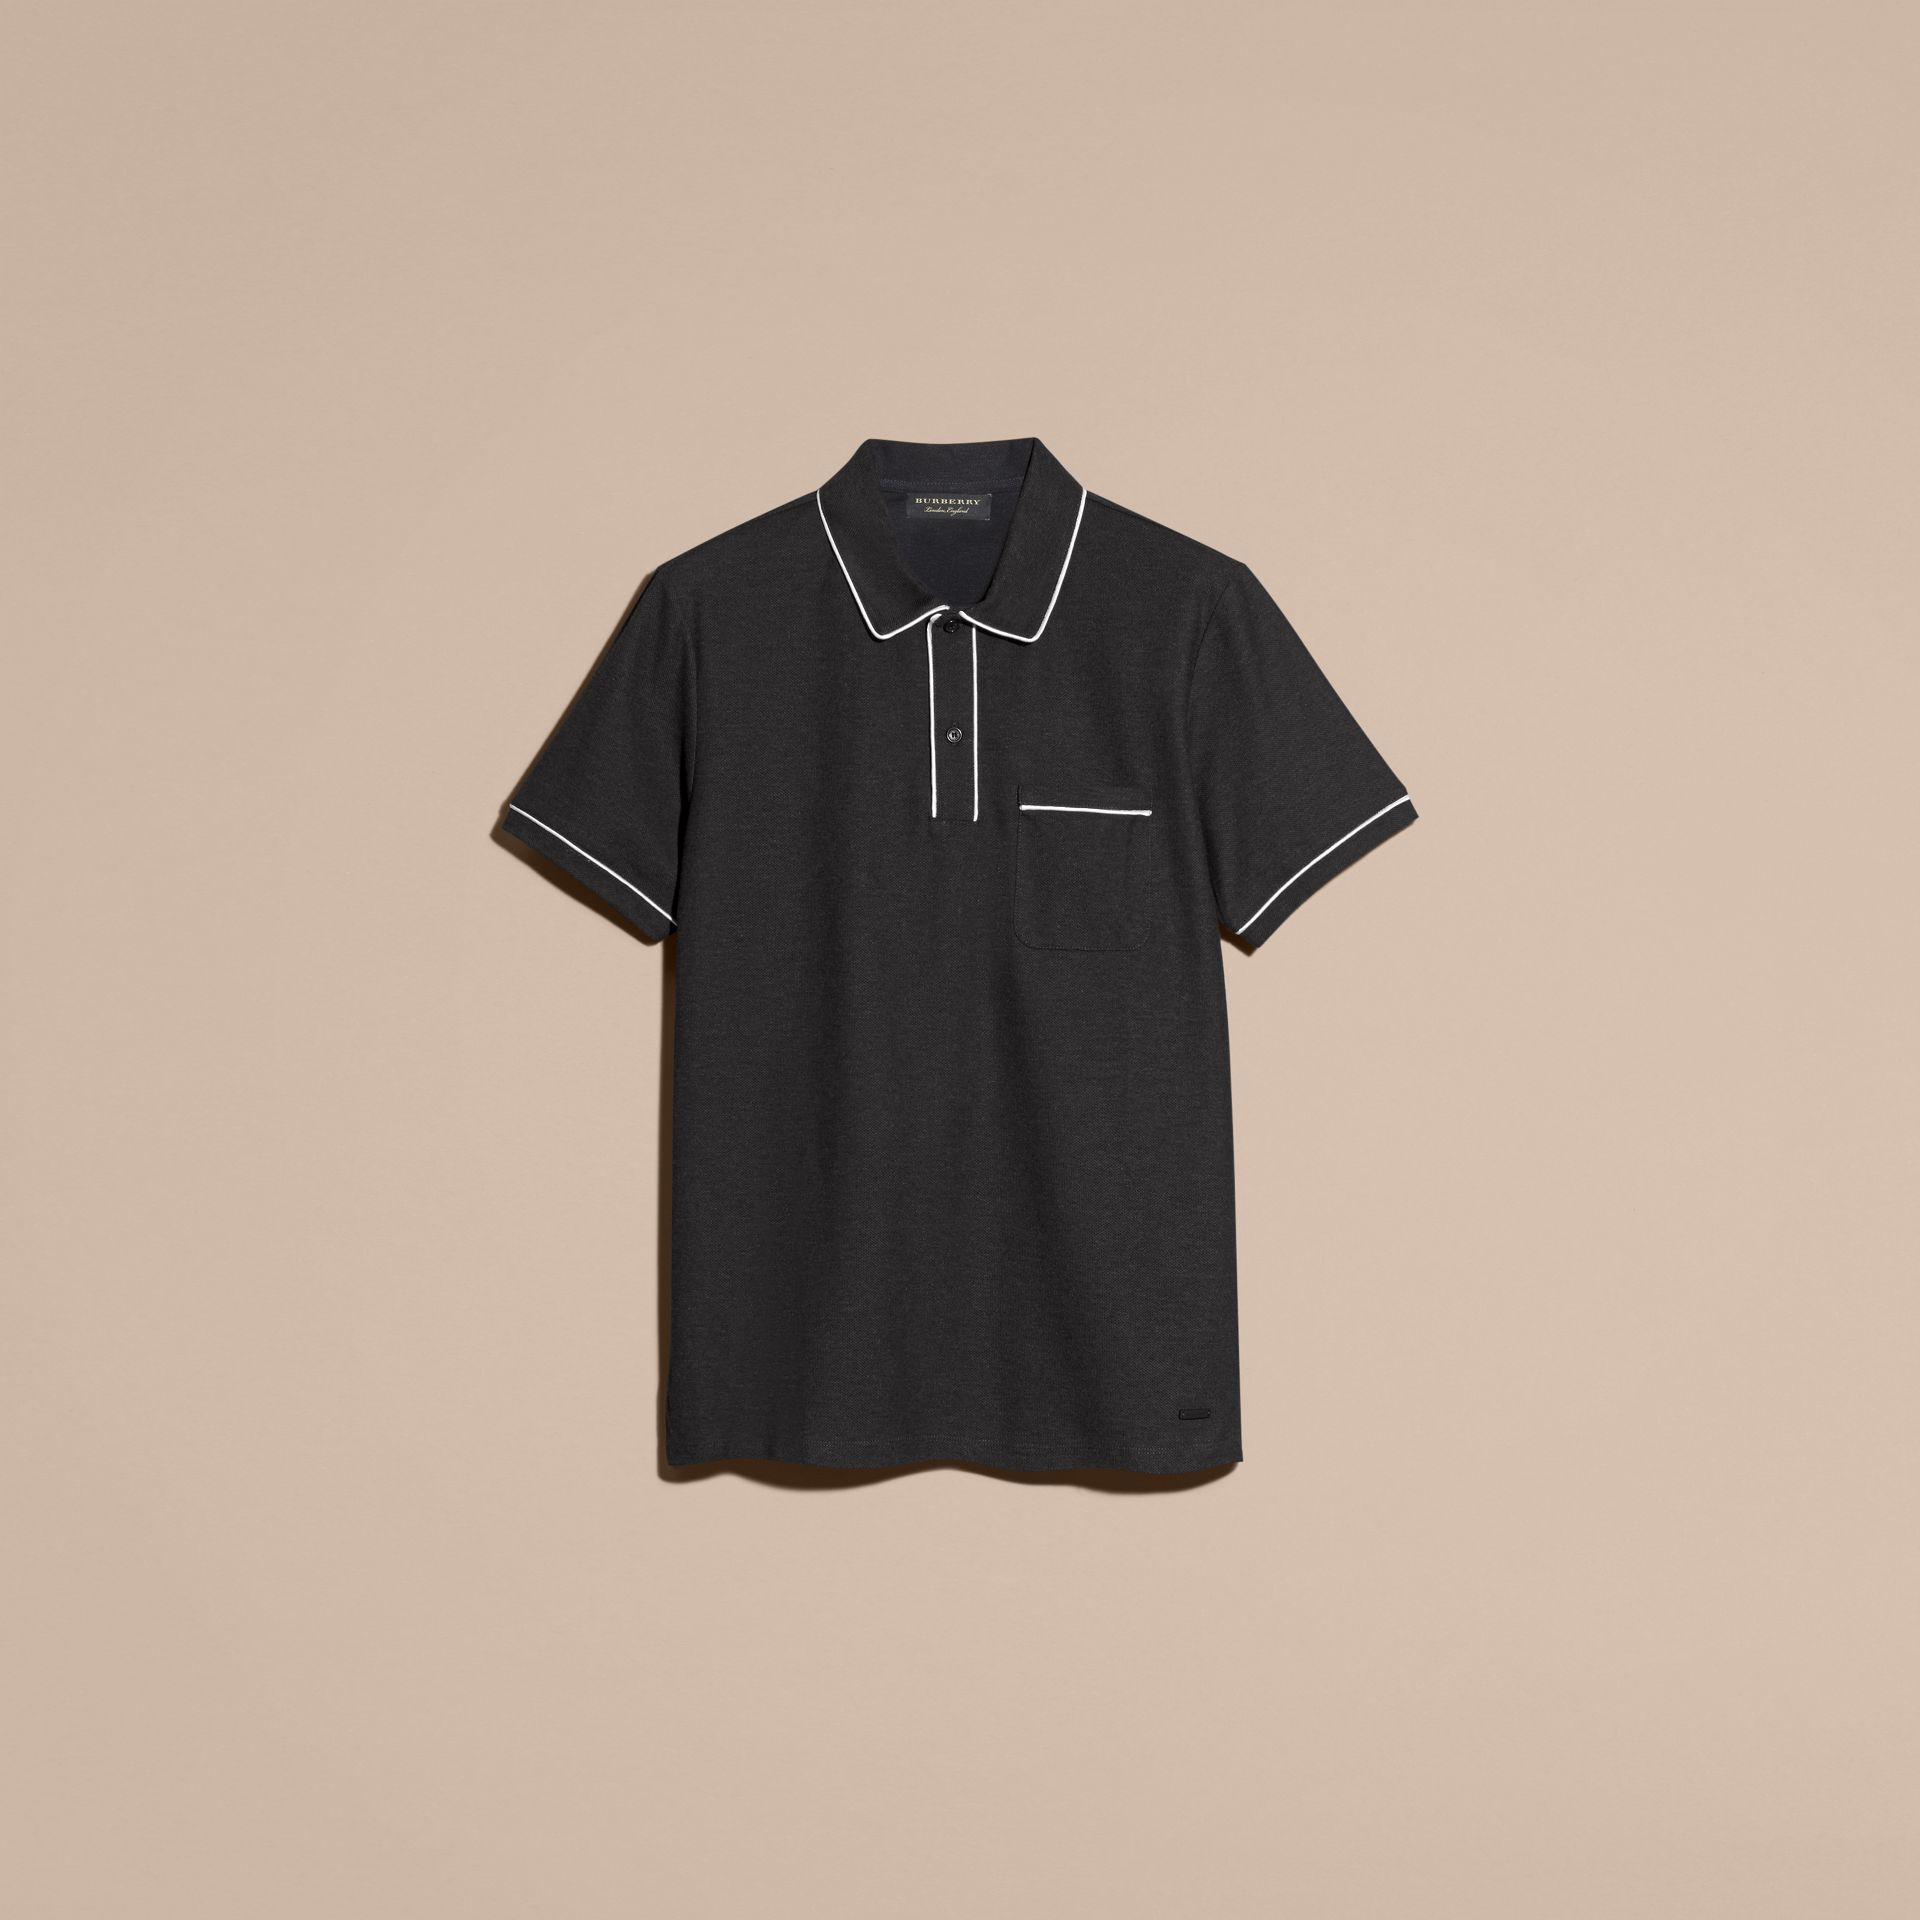 Charcoal Piped Cotton Piqué Polo Shirt Charcoal - gallery image 4